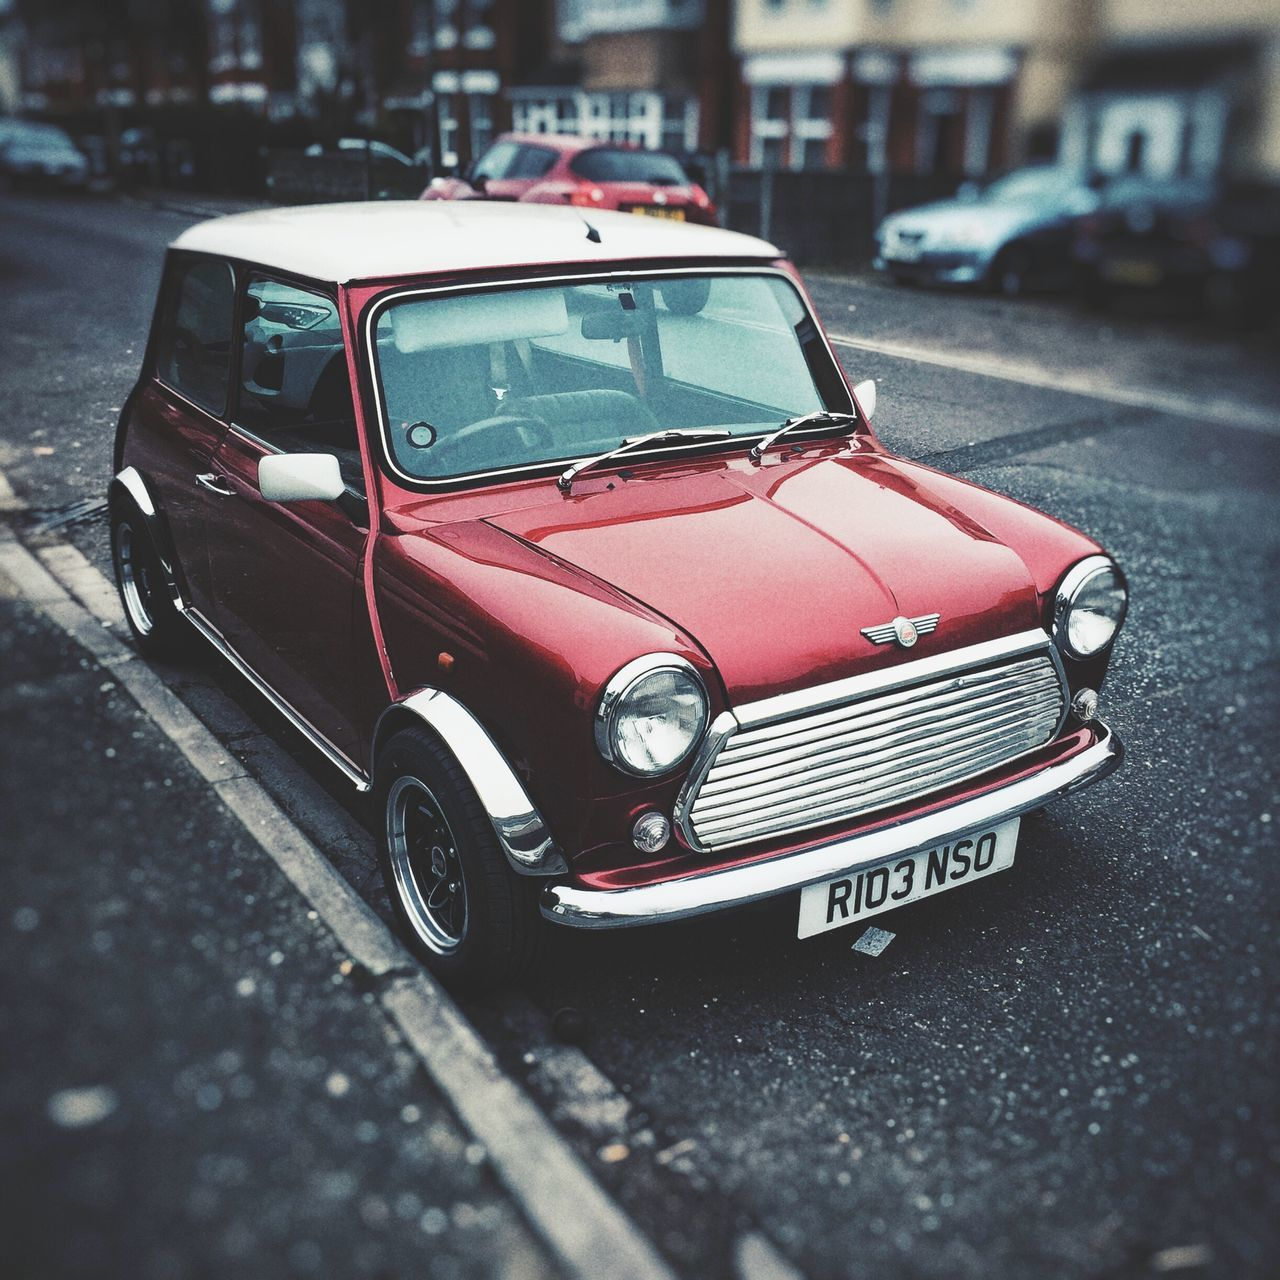 car, transportation, red, land vehicle, old-fashioned, retro styled, day, architecture, building exterior, outdoors, no people, city